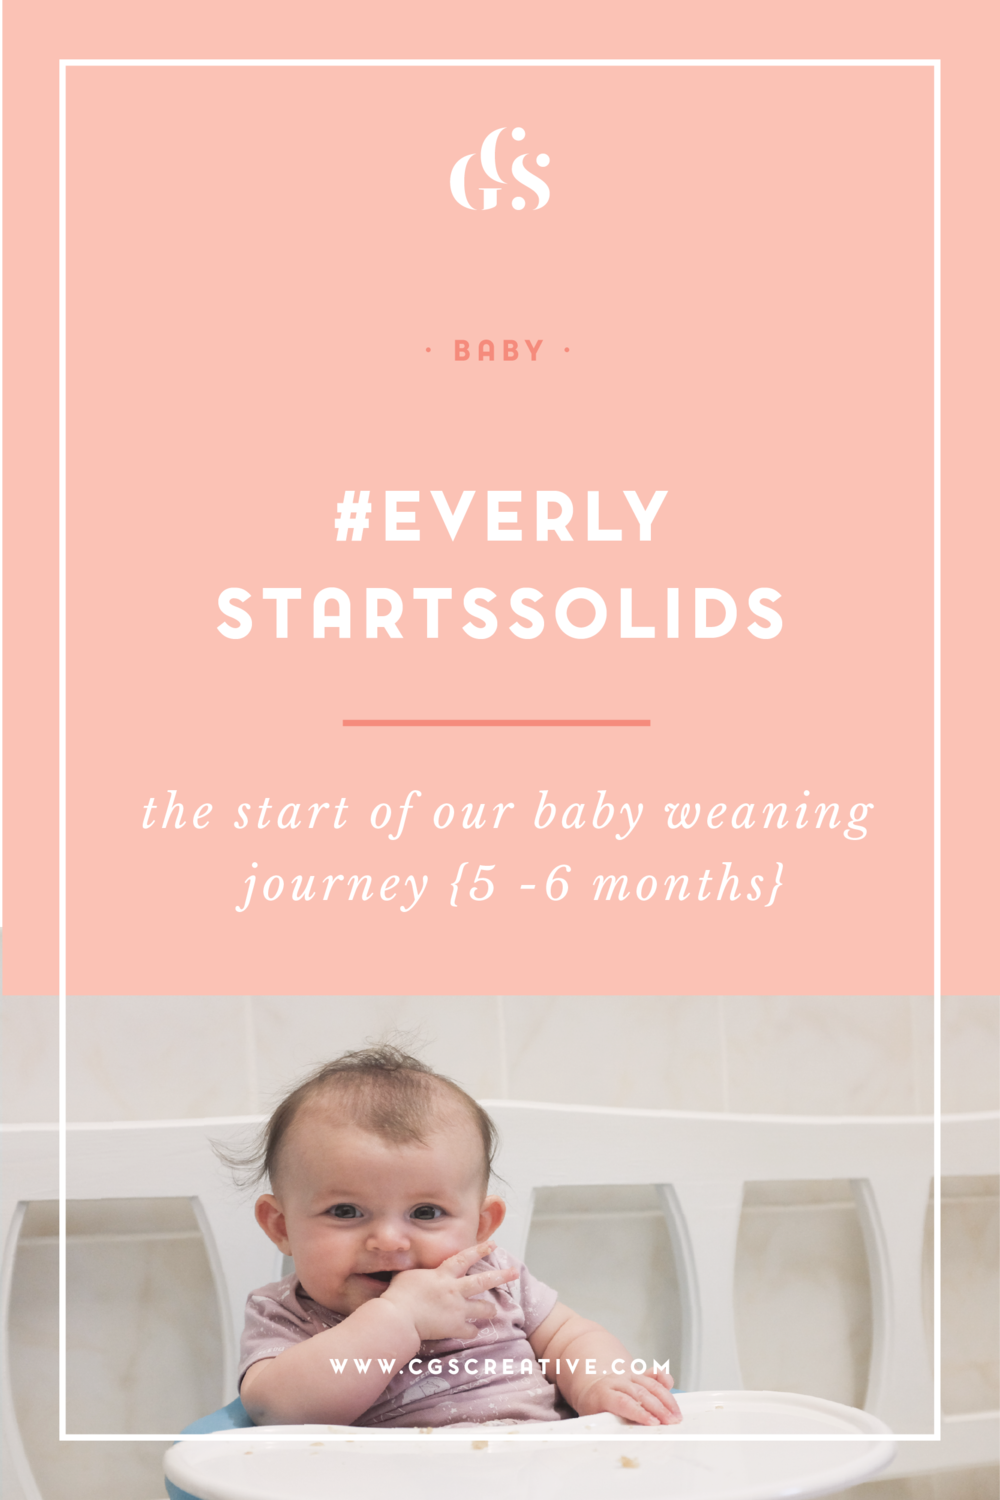 #EverlyStartsSolids Baby Weaning 5 months-01.png